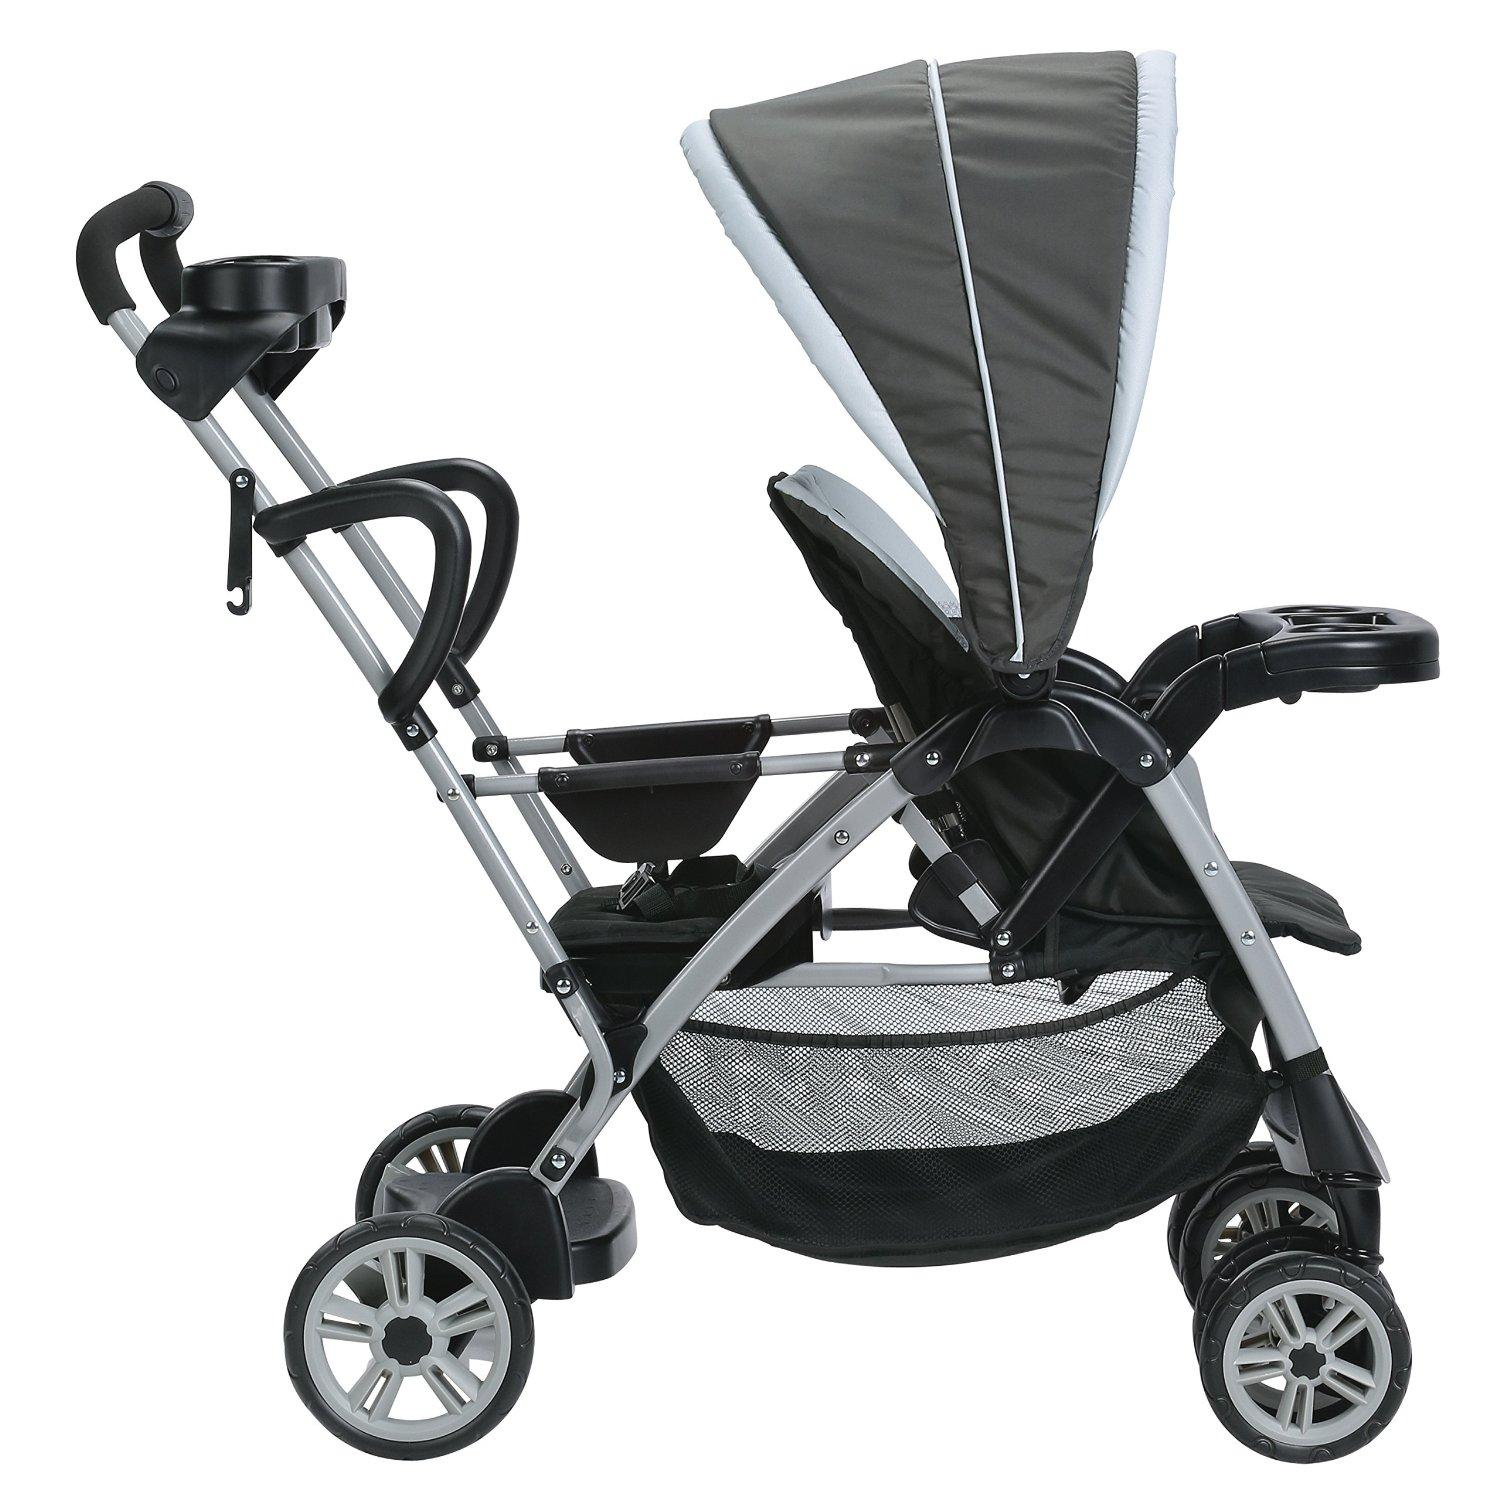 Amazon.com : Graco Roomfor2 Click Connect Stand and Ride Stroller ...